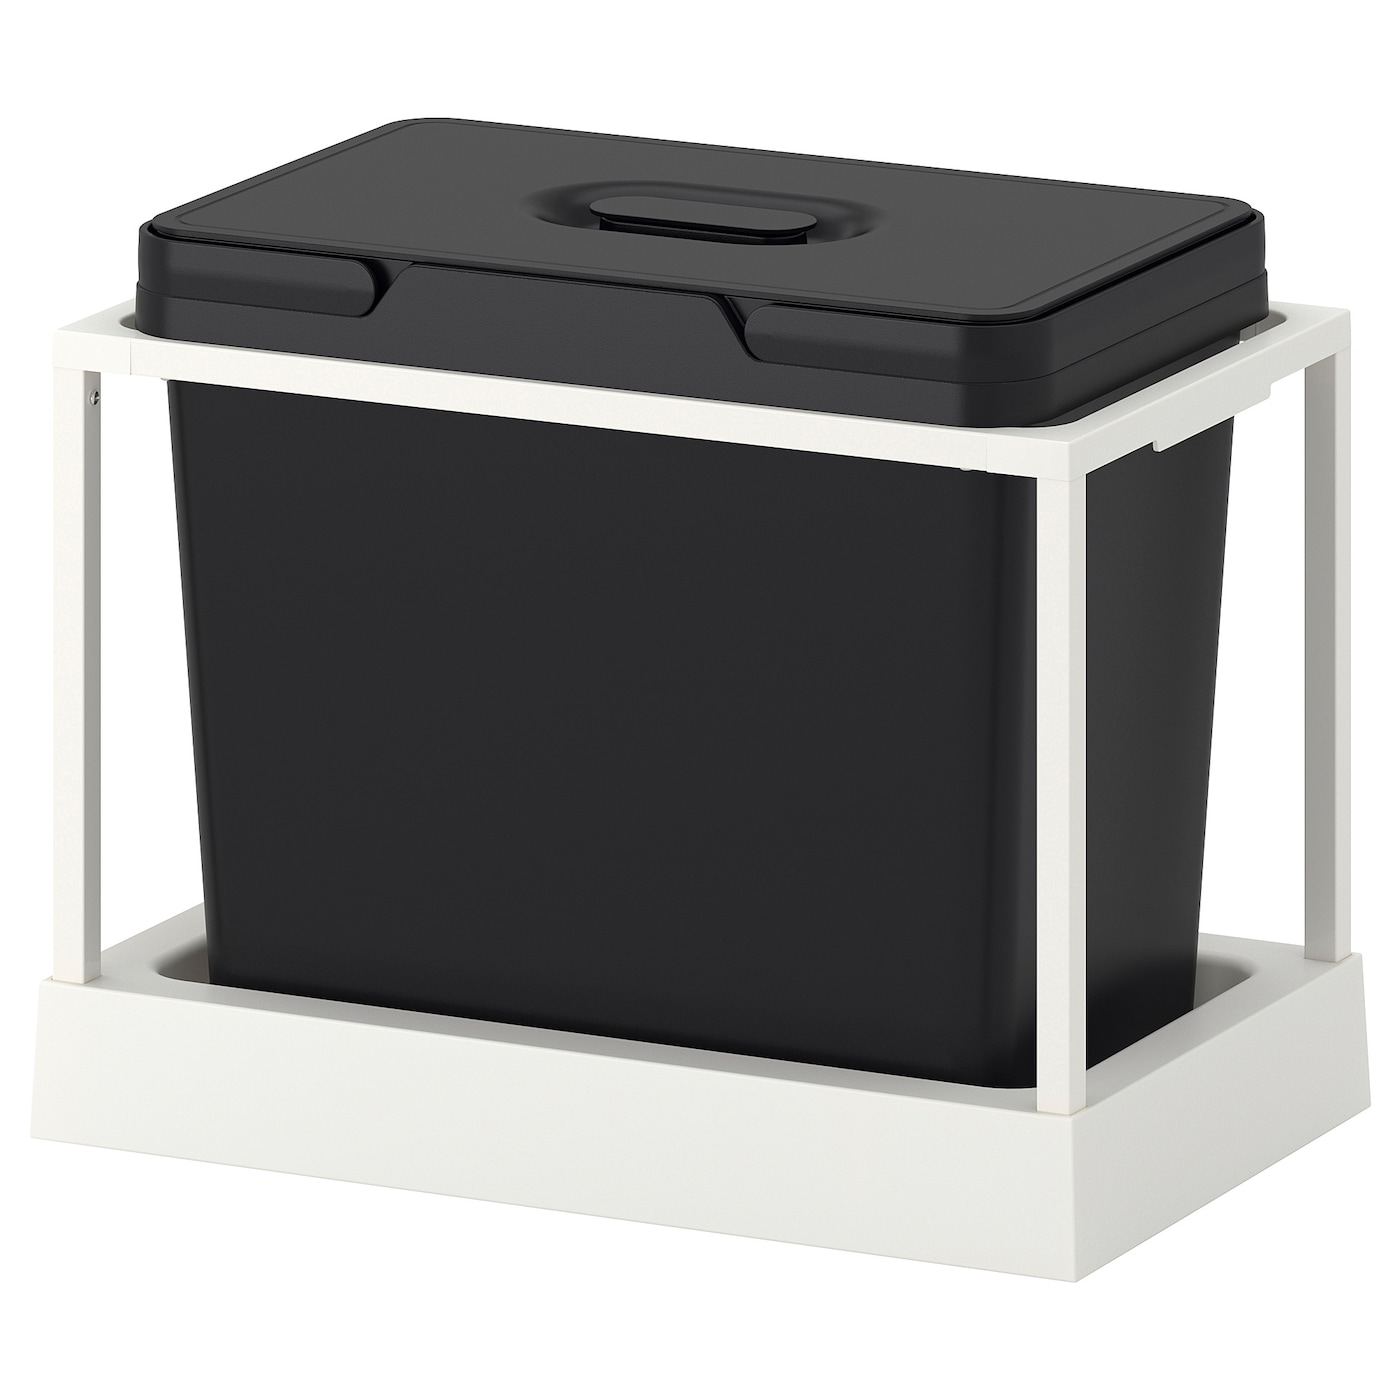 IKEA VARIERA/UTRUSTA waste sorting for cabinet Rounded corners for easy cleaning.